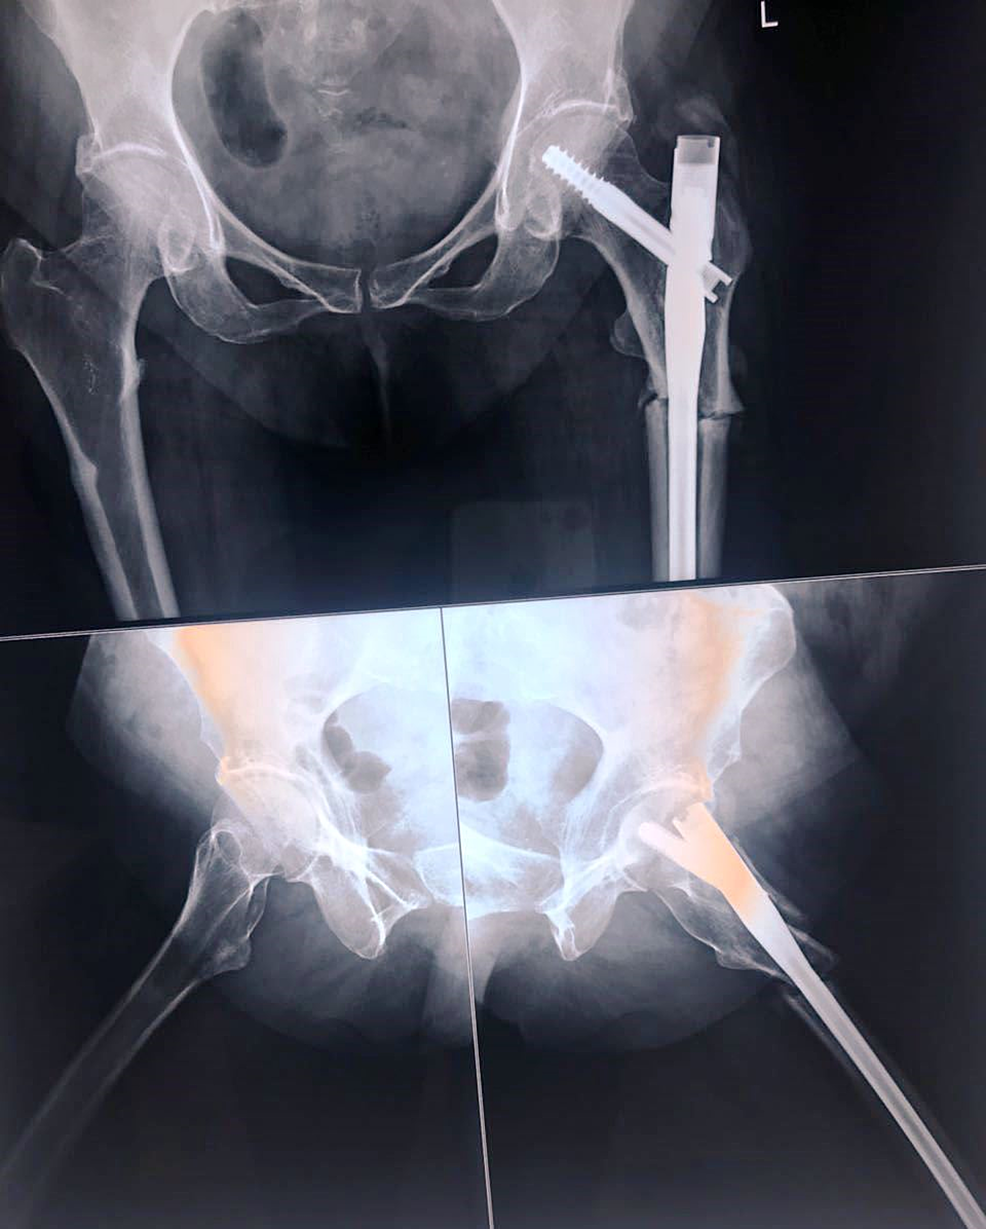 Immediate-postoperative-X-ray-showing-the-intramedullary-nail-in-situ.